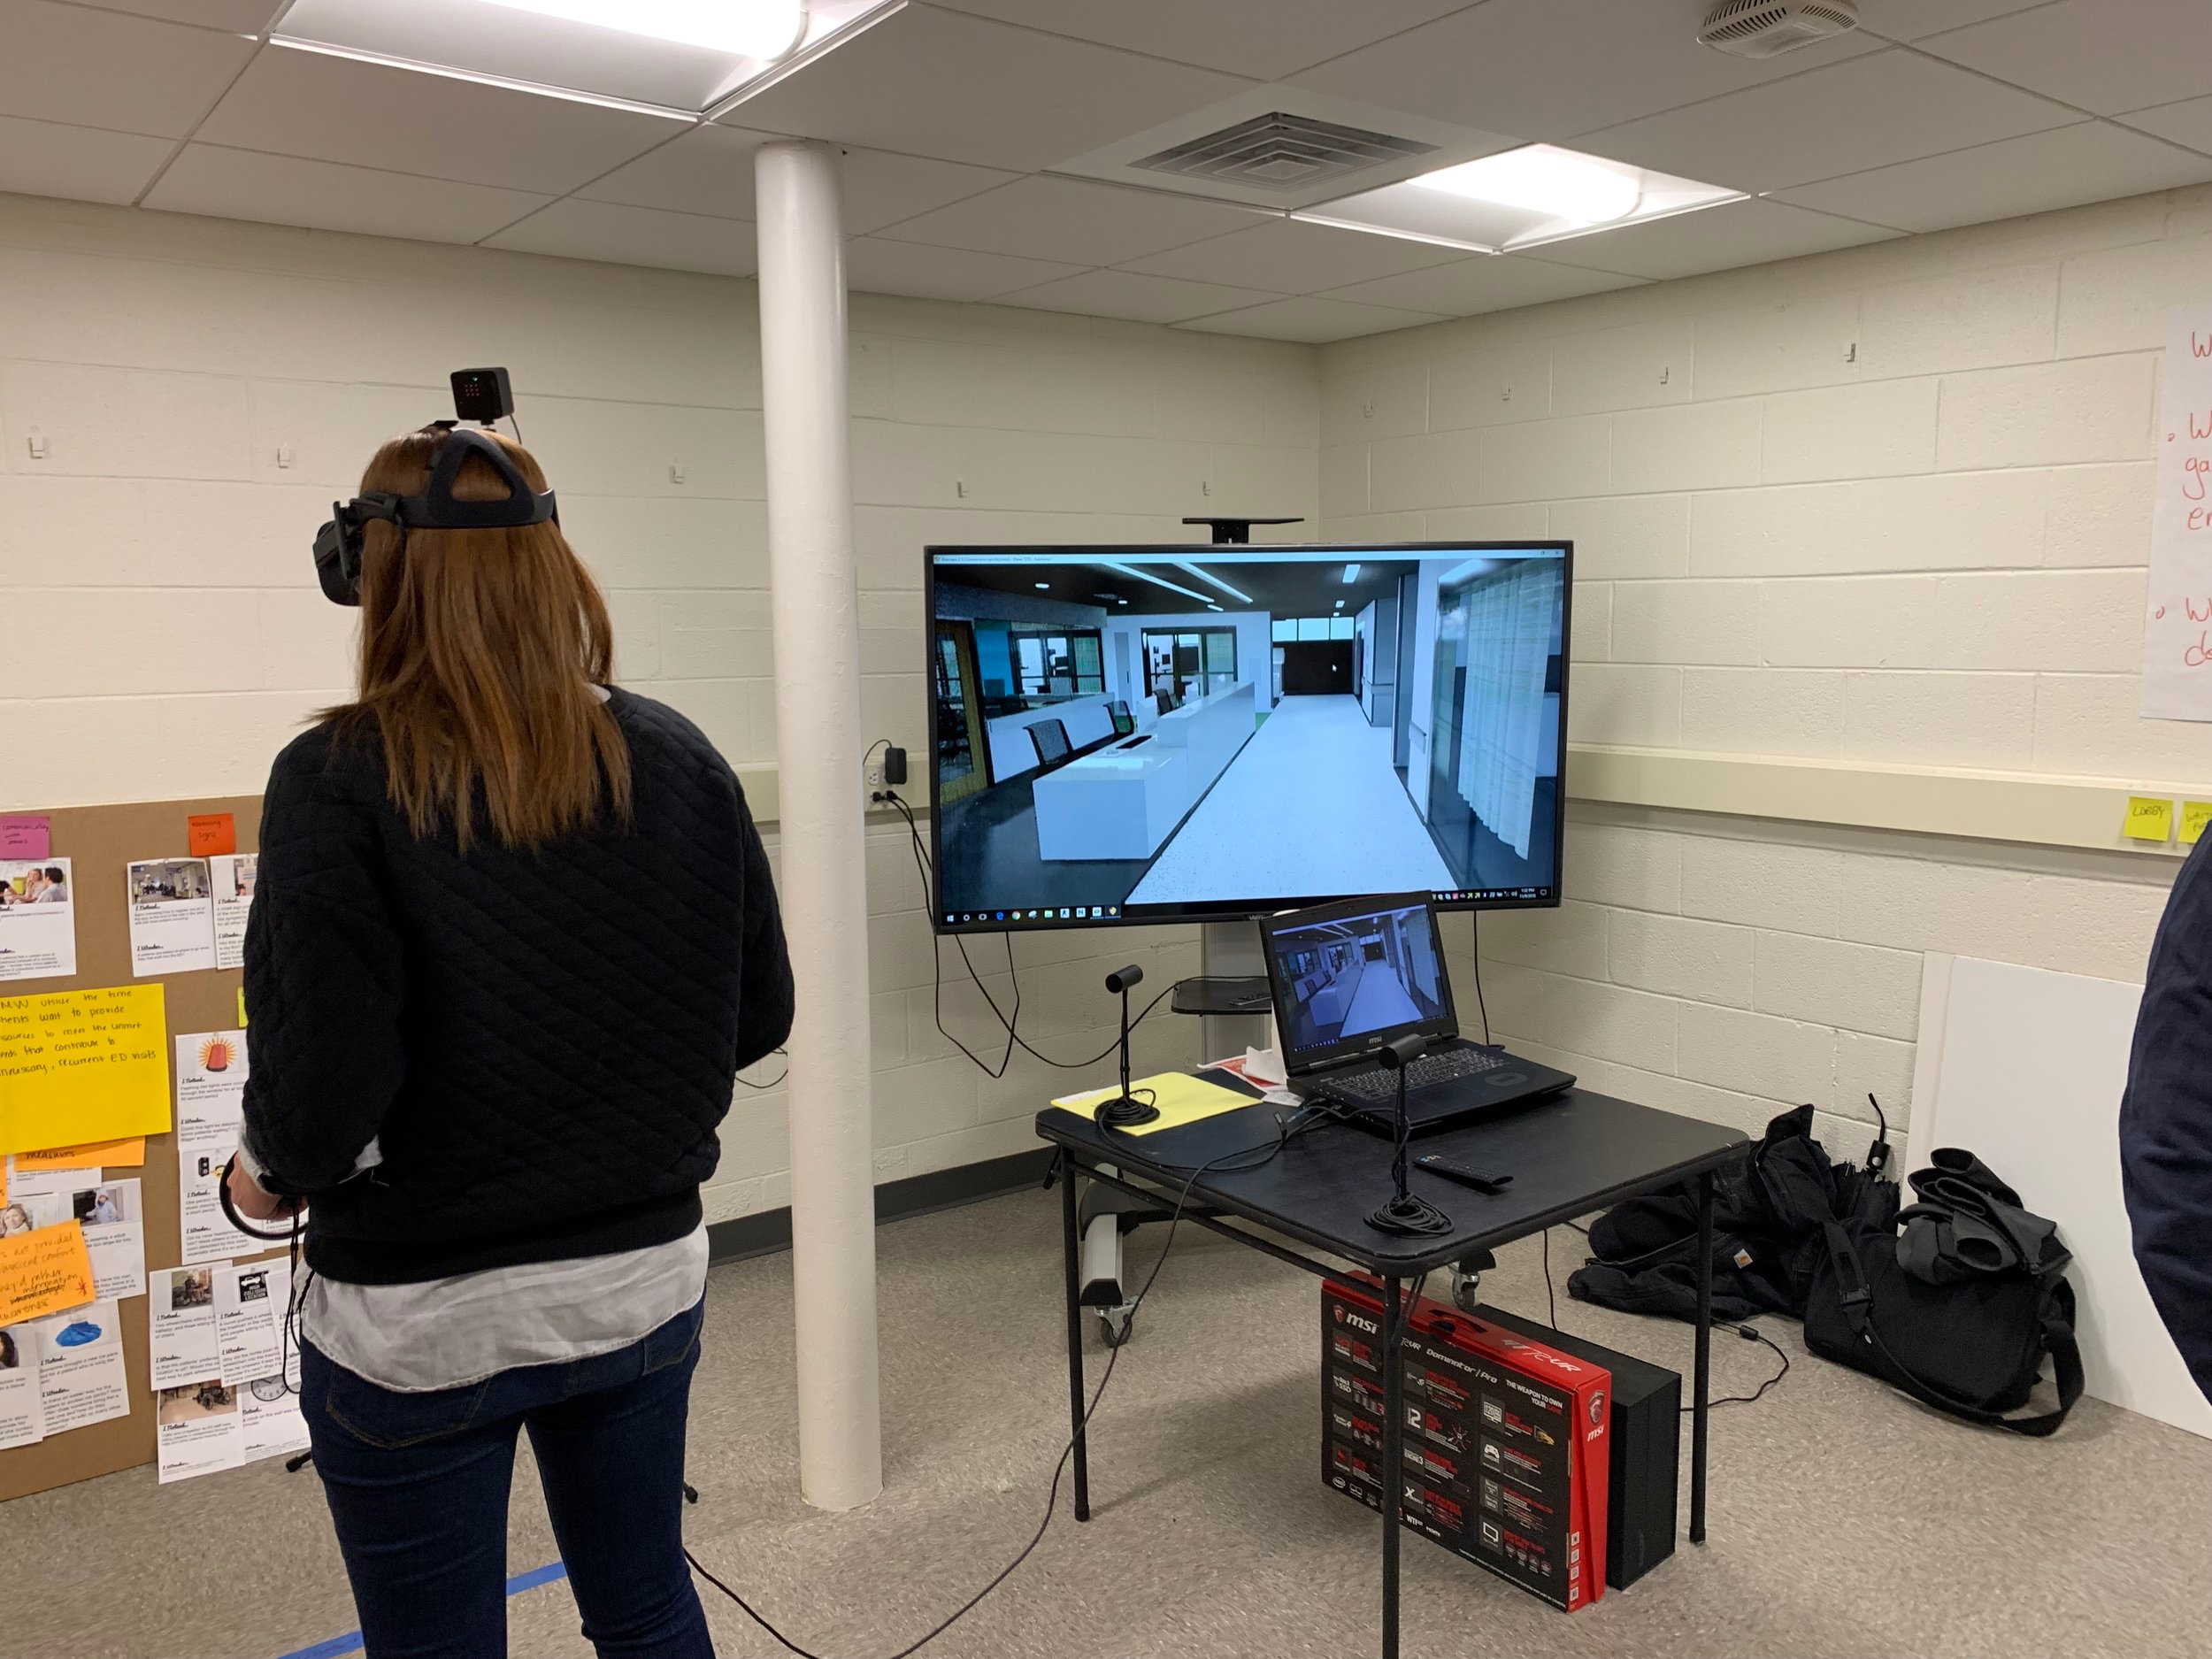 Exploring new ED in VR